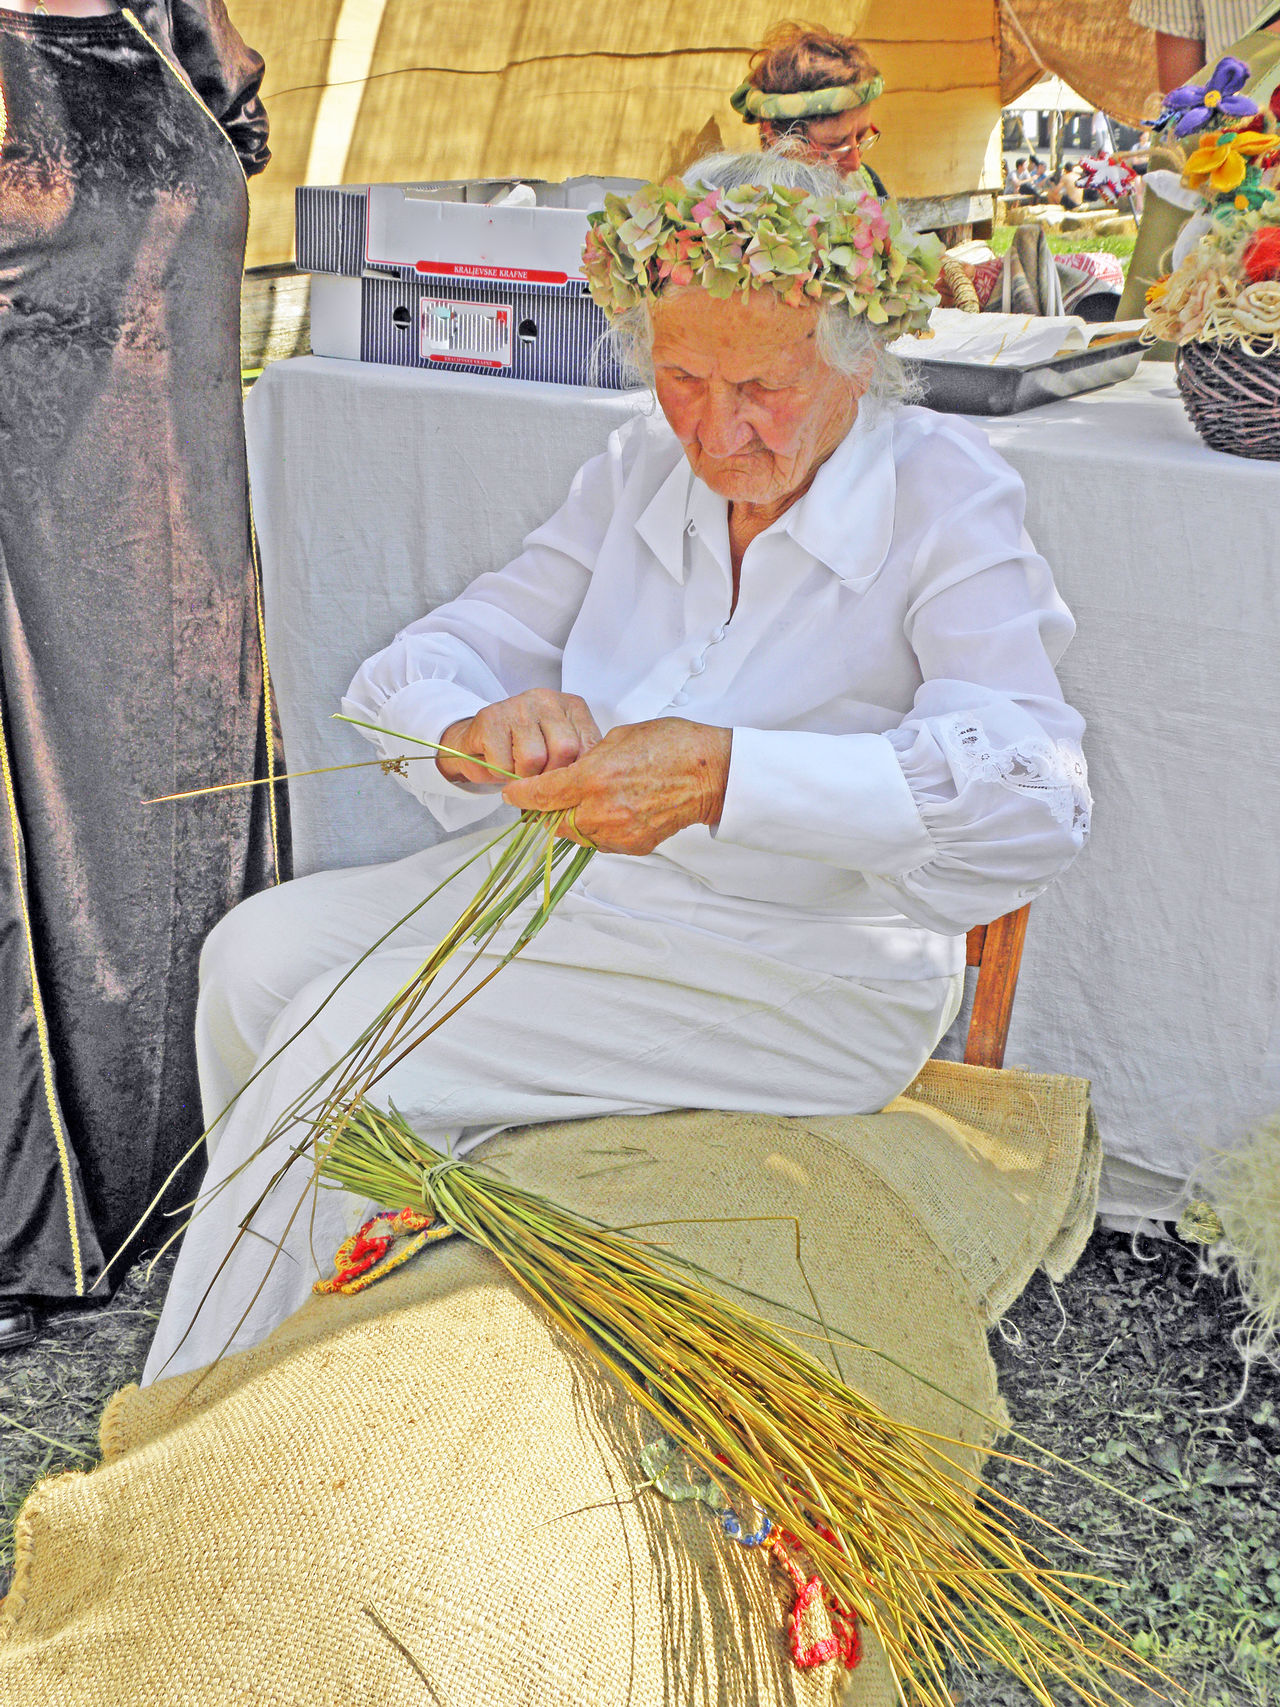 Renaissance Festival,Koprivnica 2016, old woman makes basket, 26 Annual Basket Baskets Hand Made Croatia Eu Europe Event Fair Koprivnica Making Medieval Old Woman Old Woman Portrait Person Renaissance Festival Shadow Summer Traditional